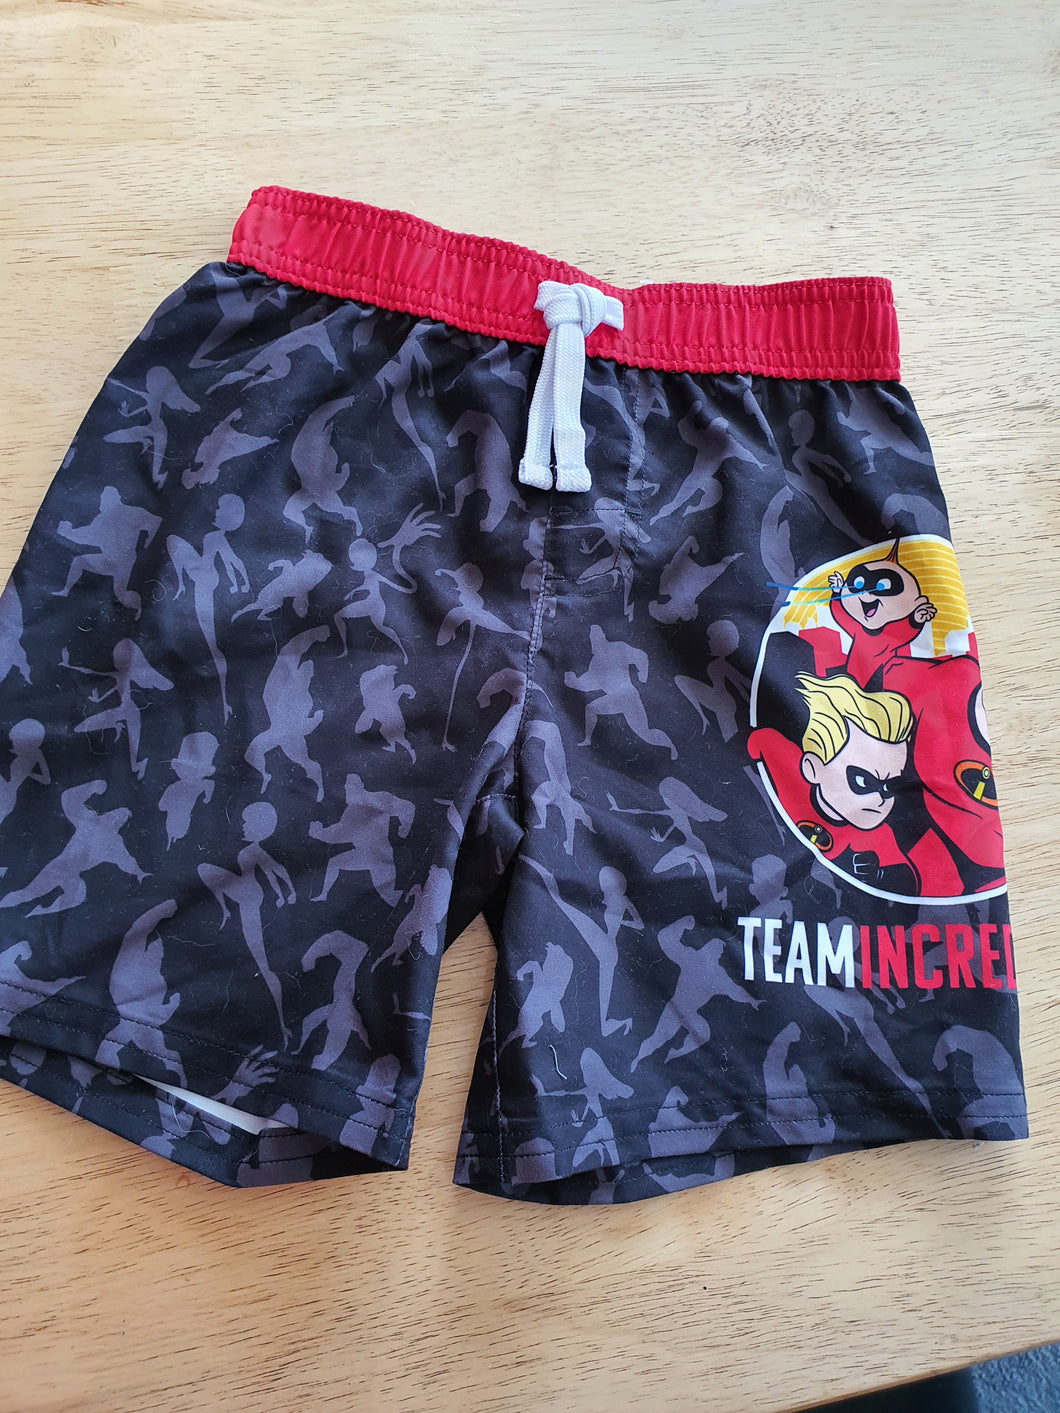 Incredibles Shorts